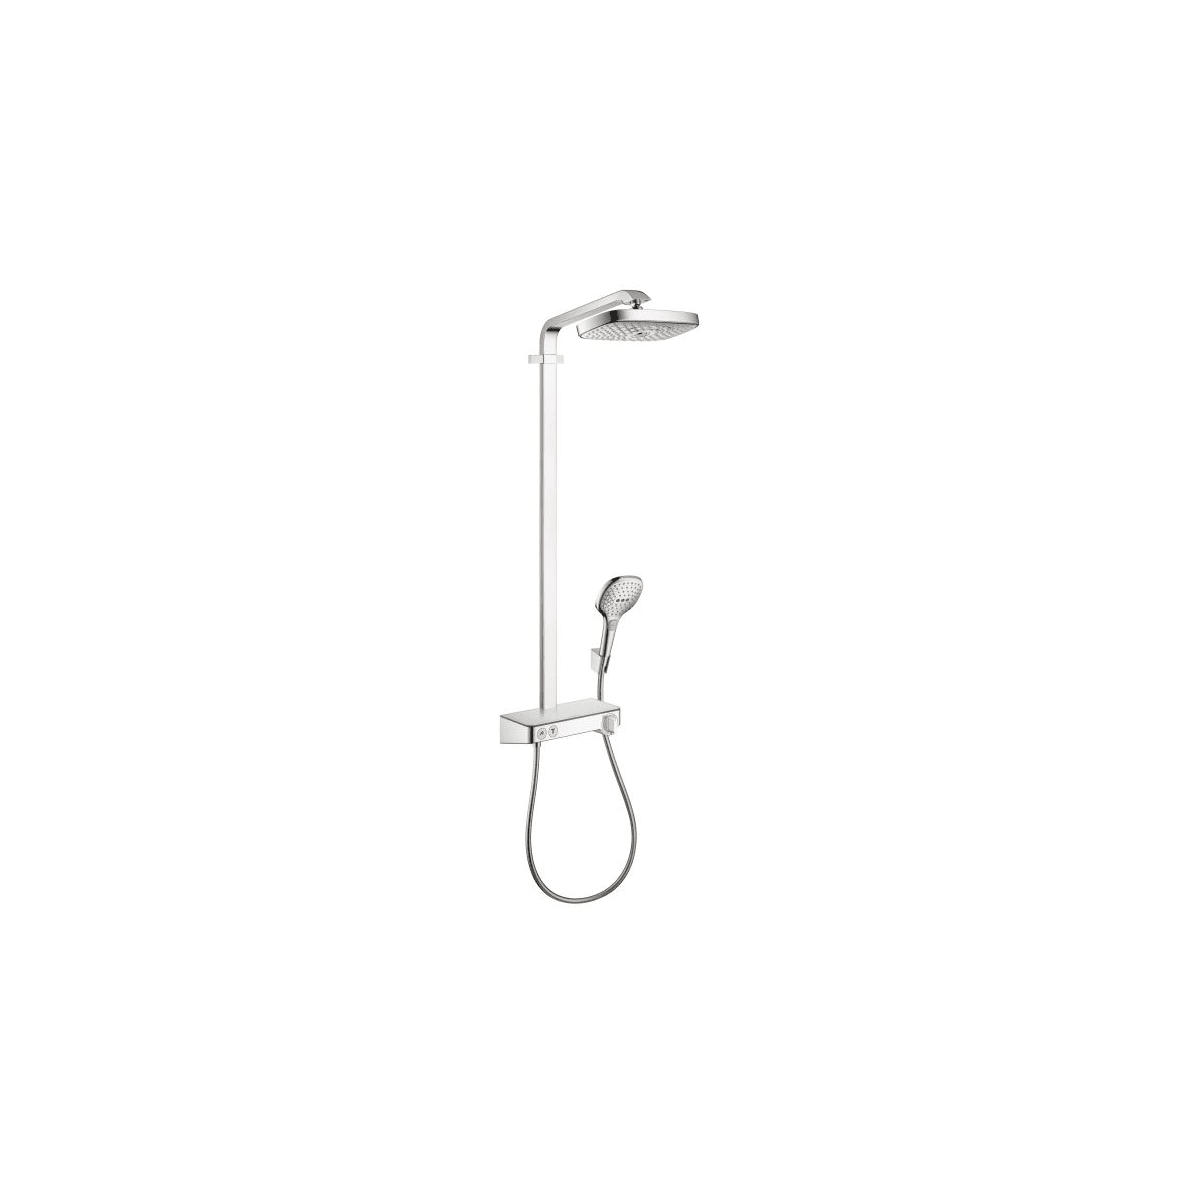 Hansgrohe 27126001 Chrome Raindance Shower Package With Raindance ...